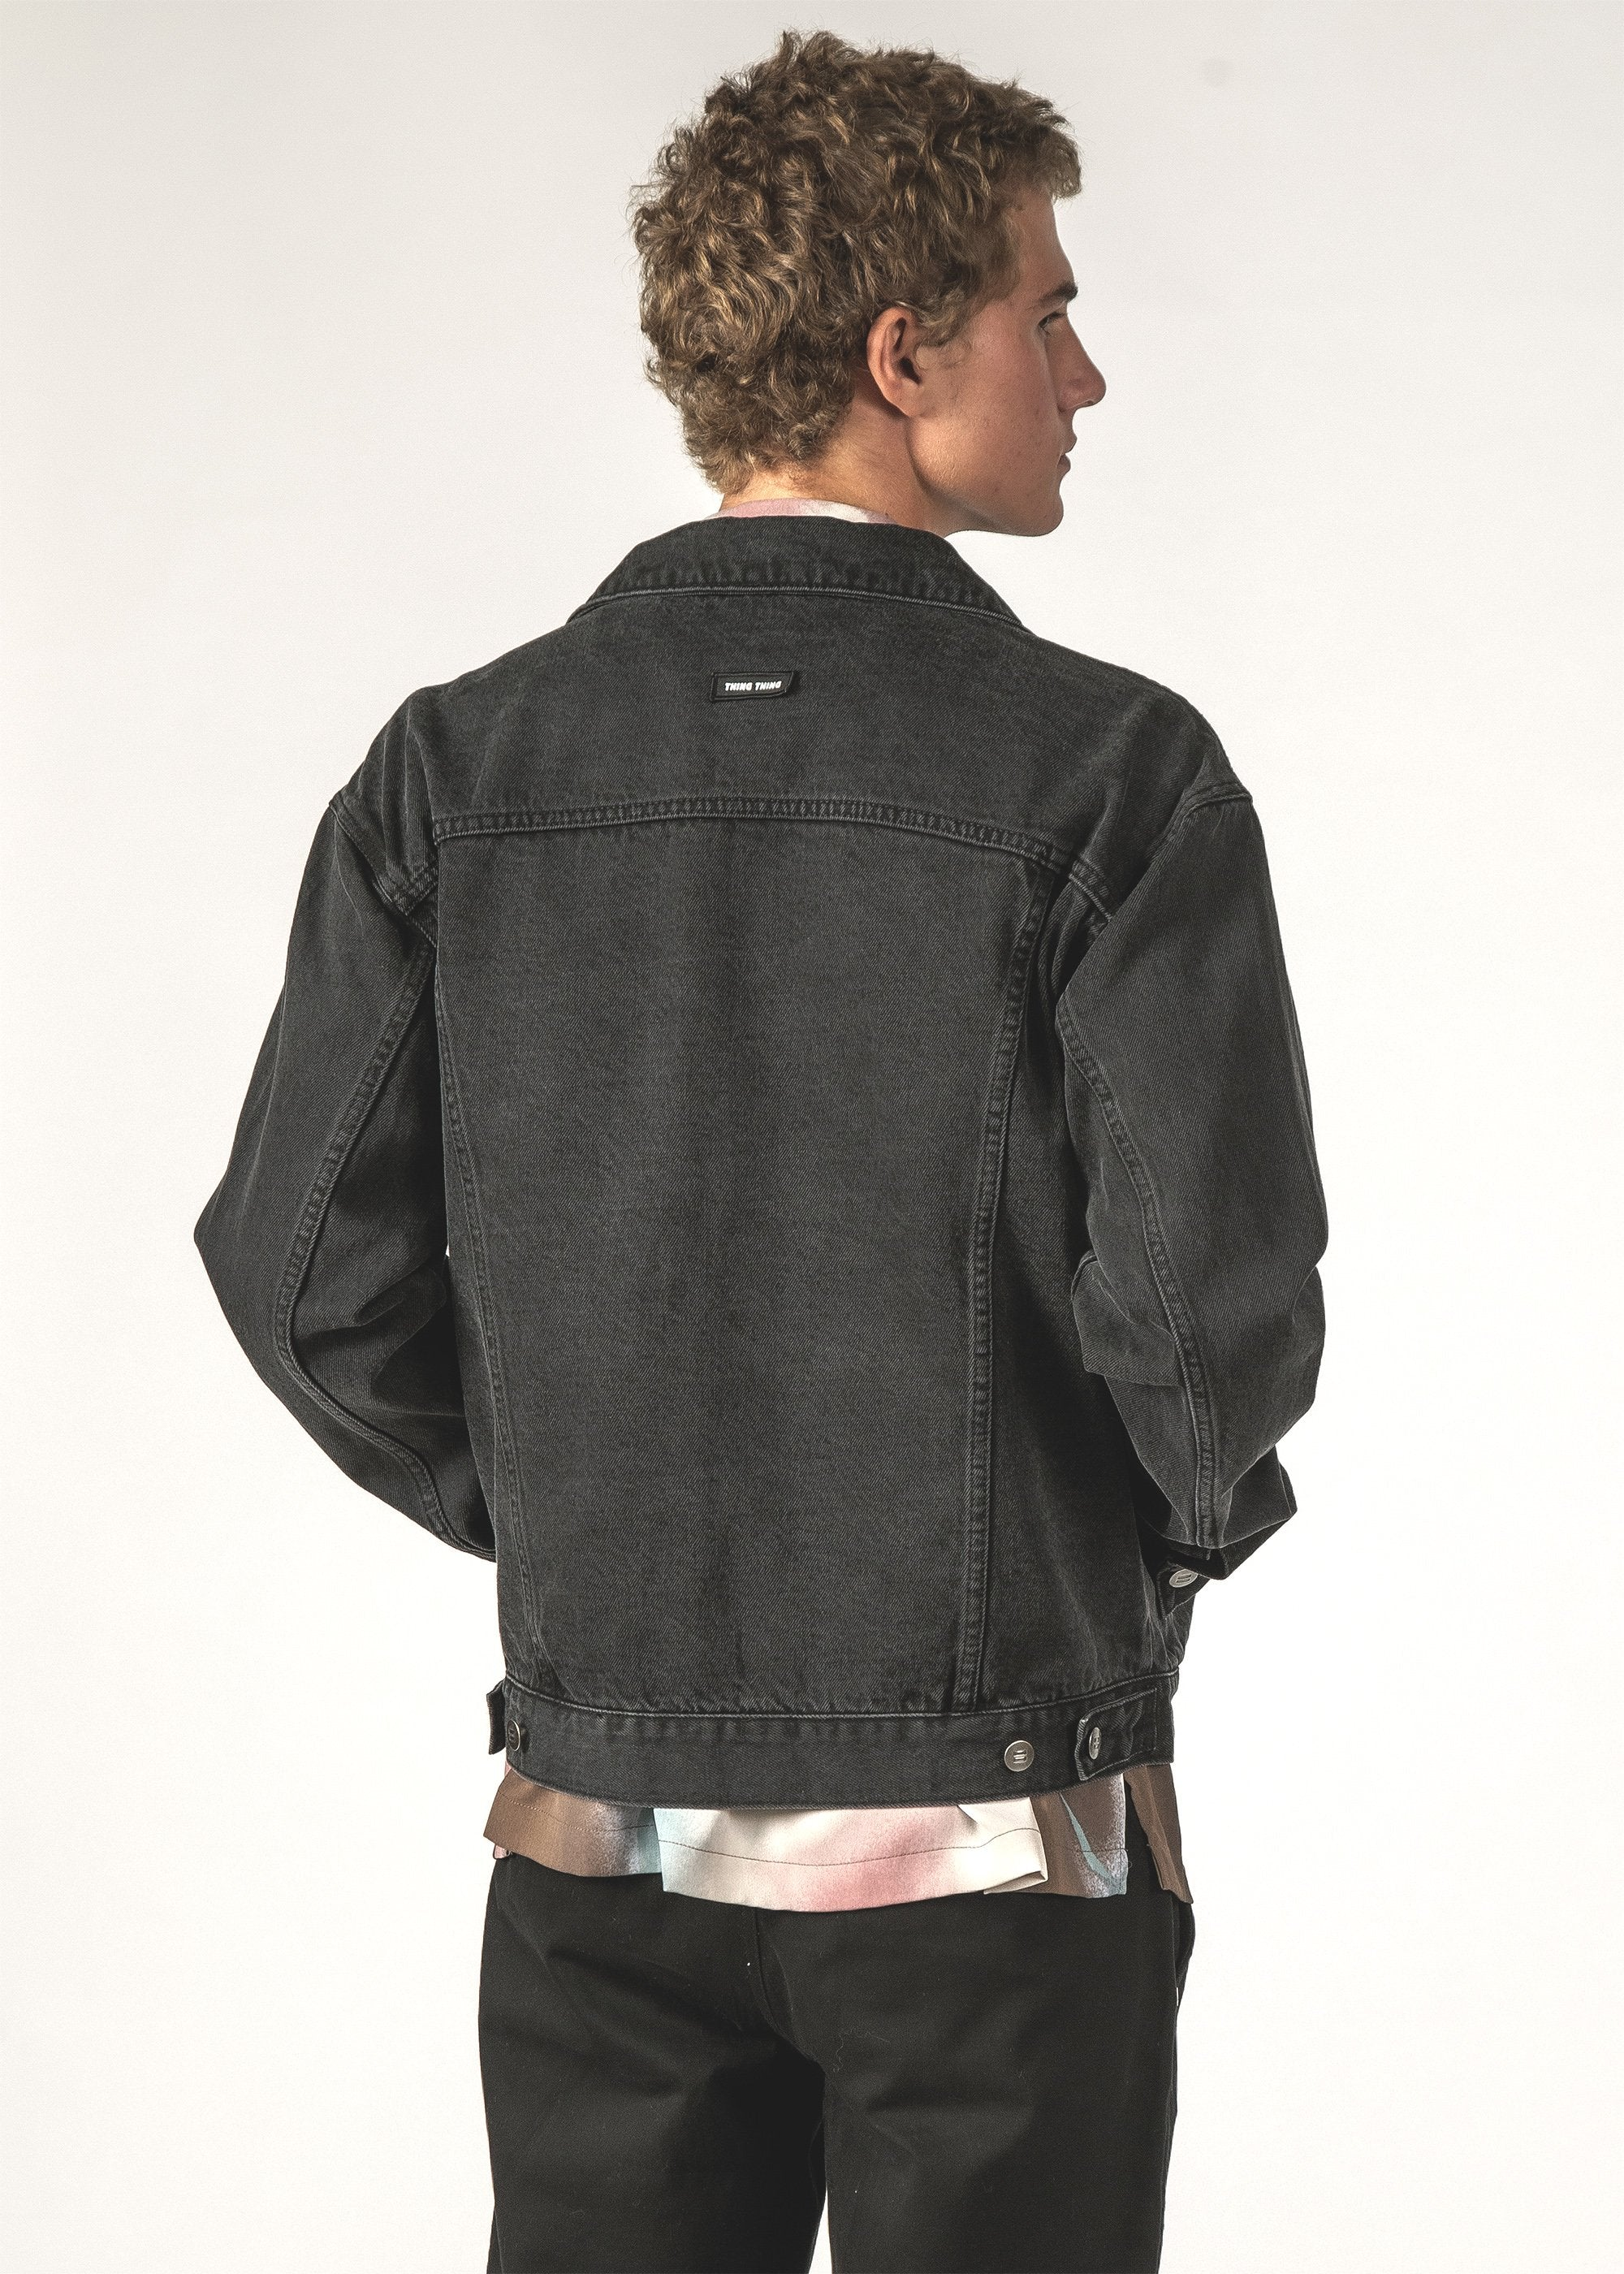 EGO DENIM JACKET - Black Wash